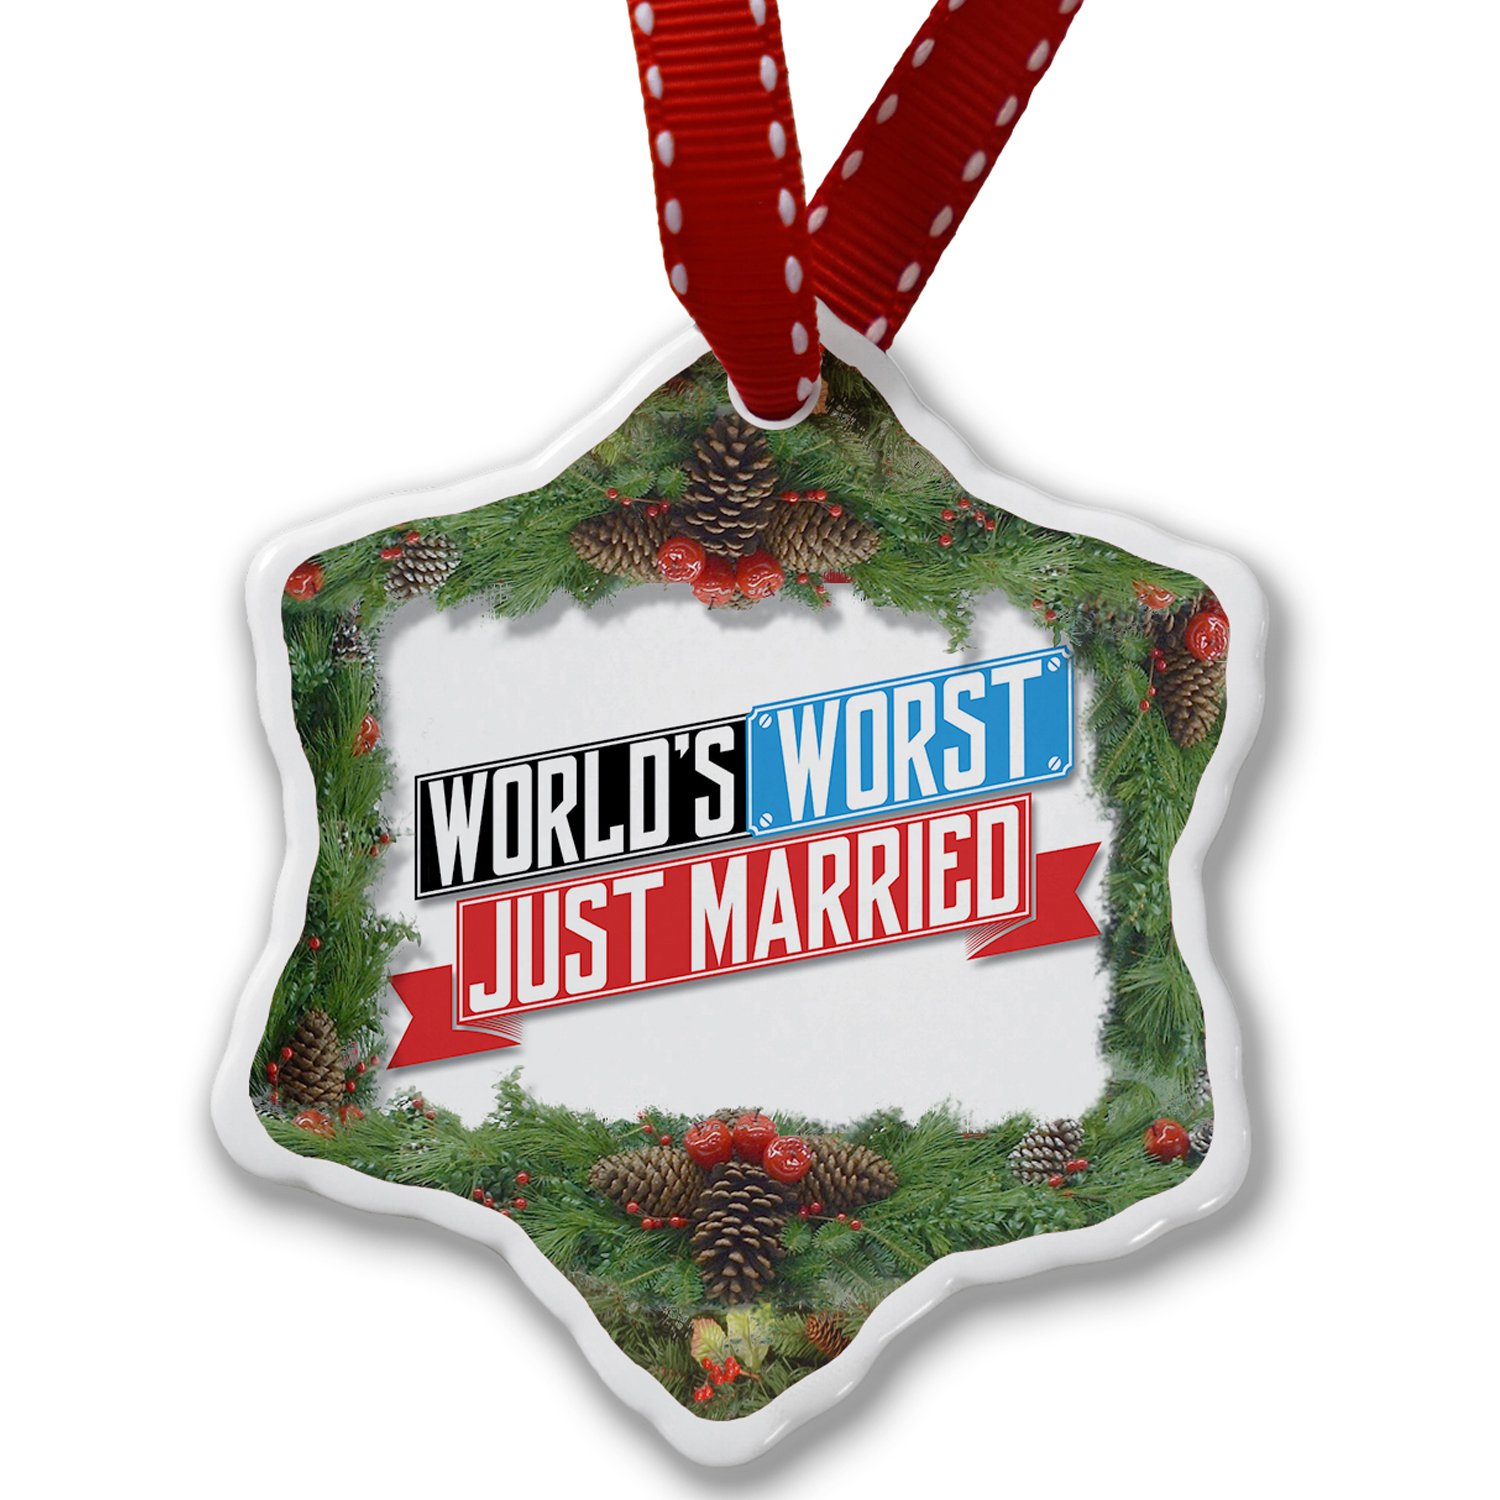 Amazon.com: Christmas Ornament Funny Worlds worst Just Married ...